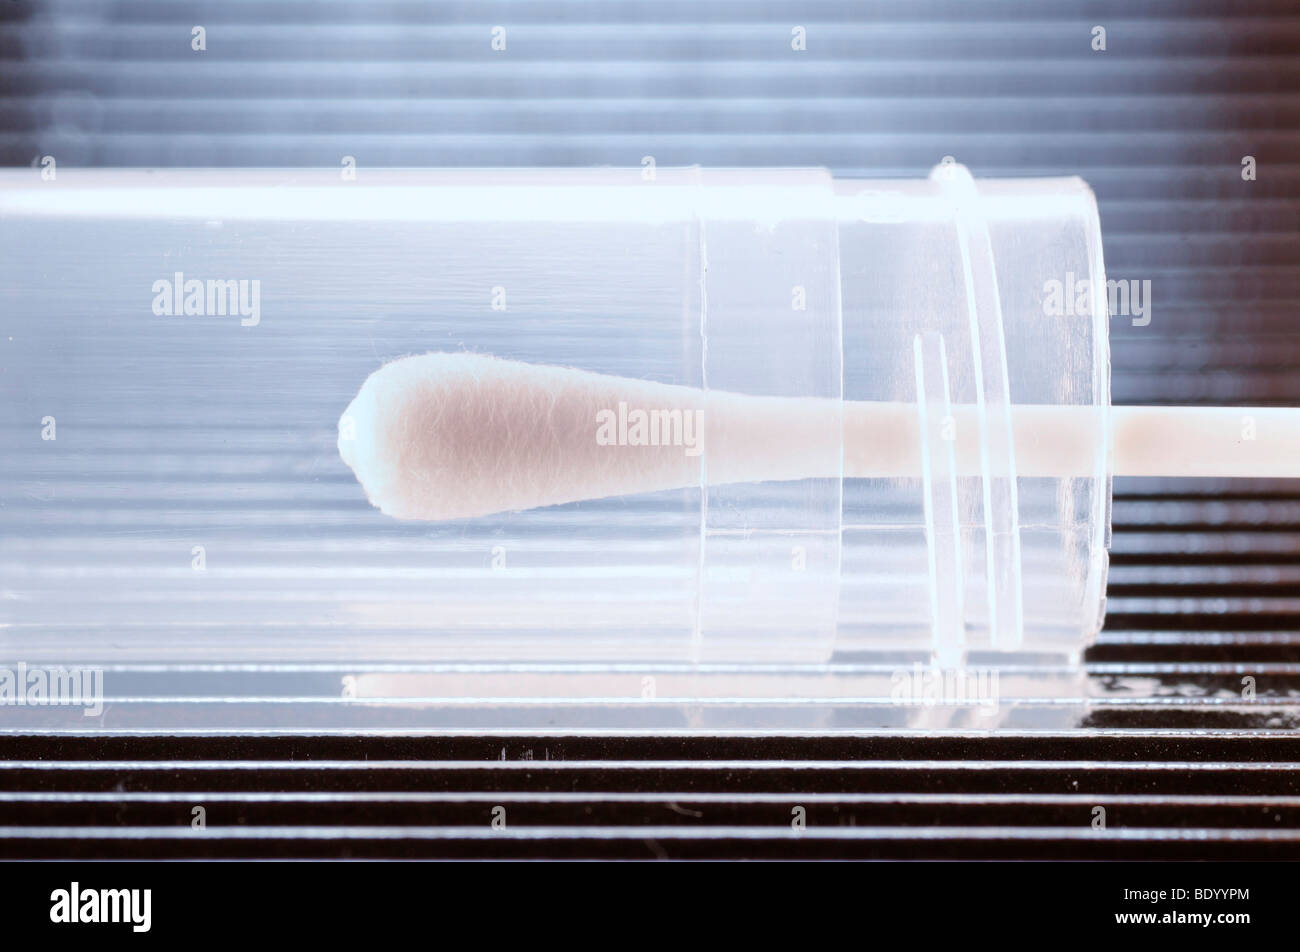 Cotton swab for DNA testing and paternity testing - Stock Image